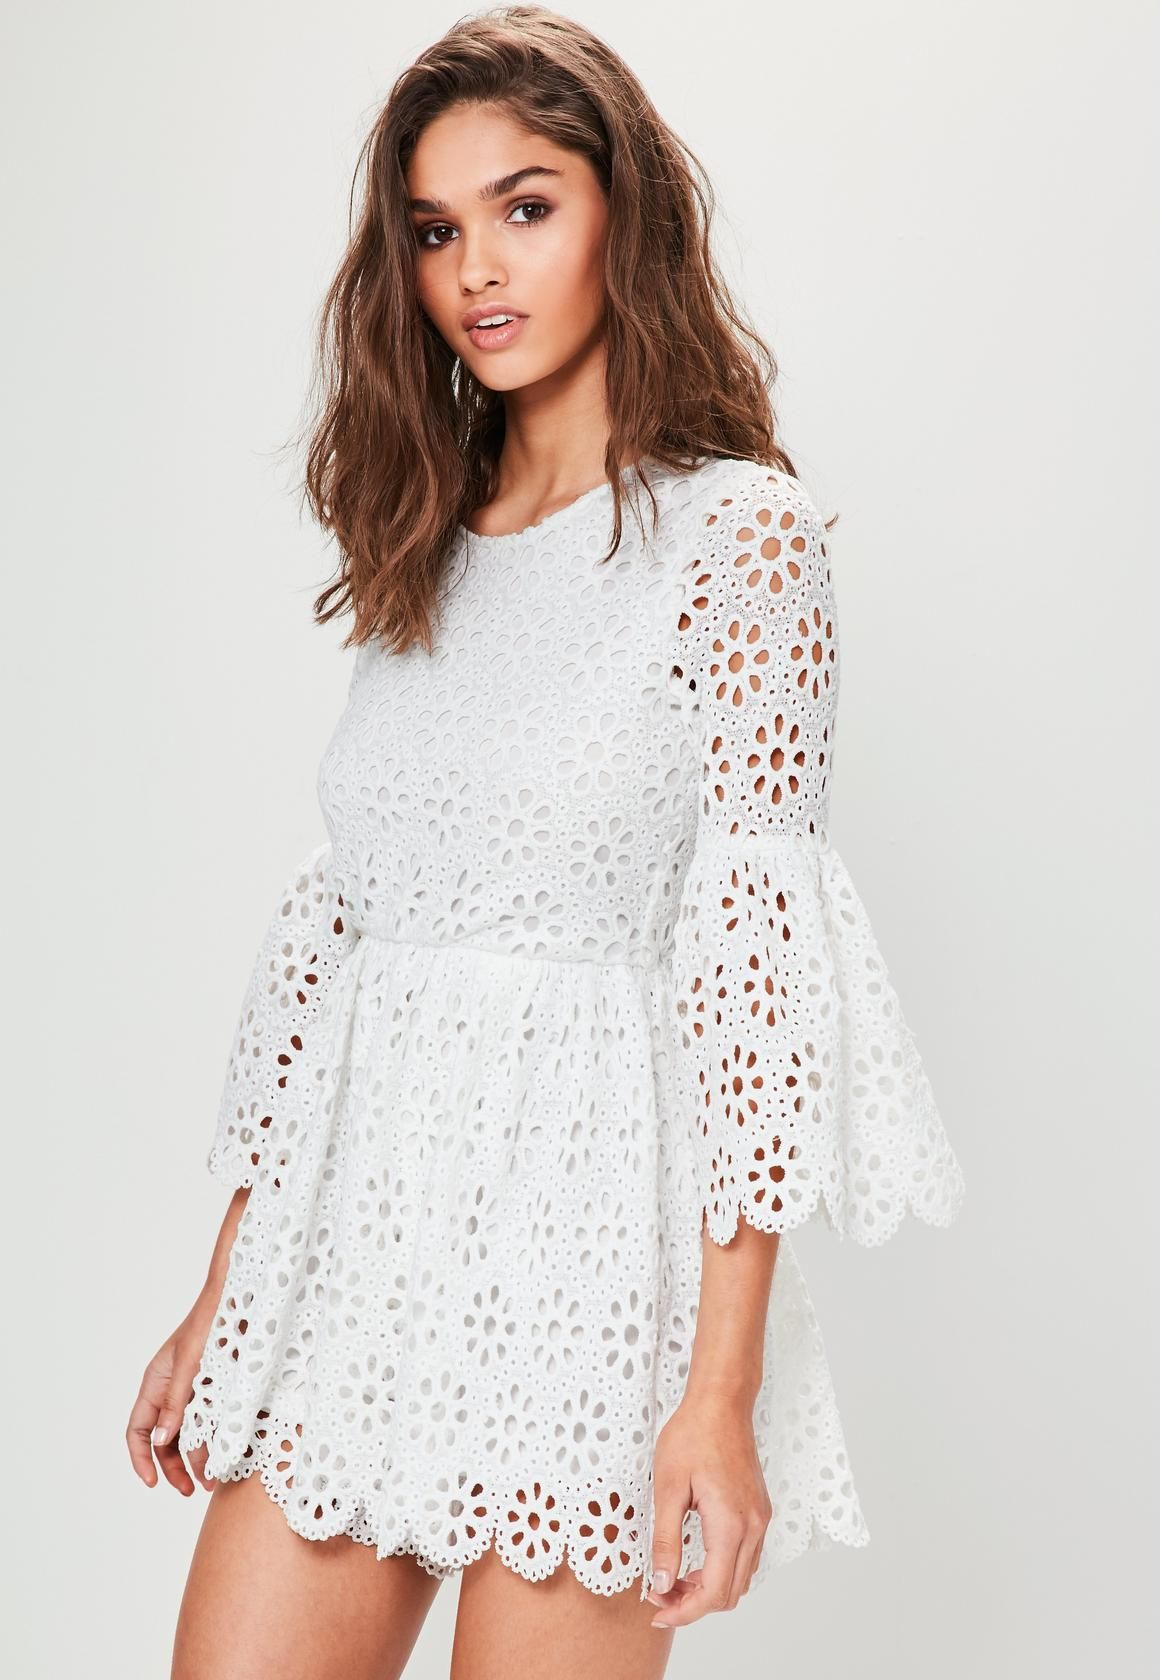 4abb158ecf88b Missguided - White Crochet Lace Flared Sleeve Romper | White | Lace ...